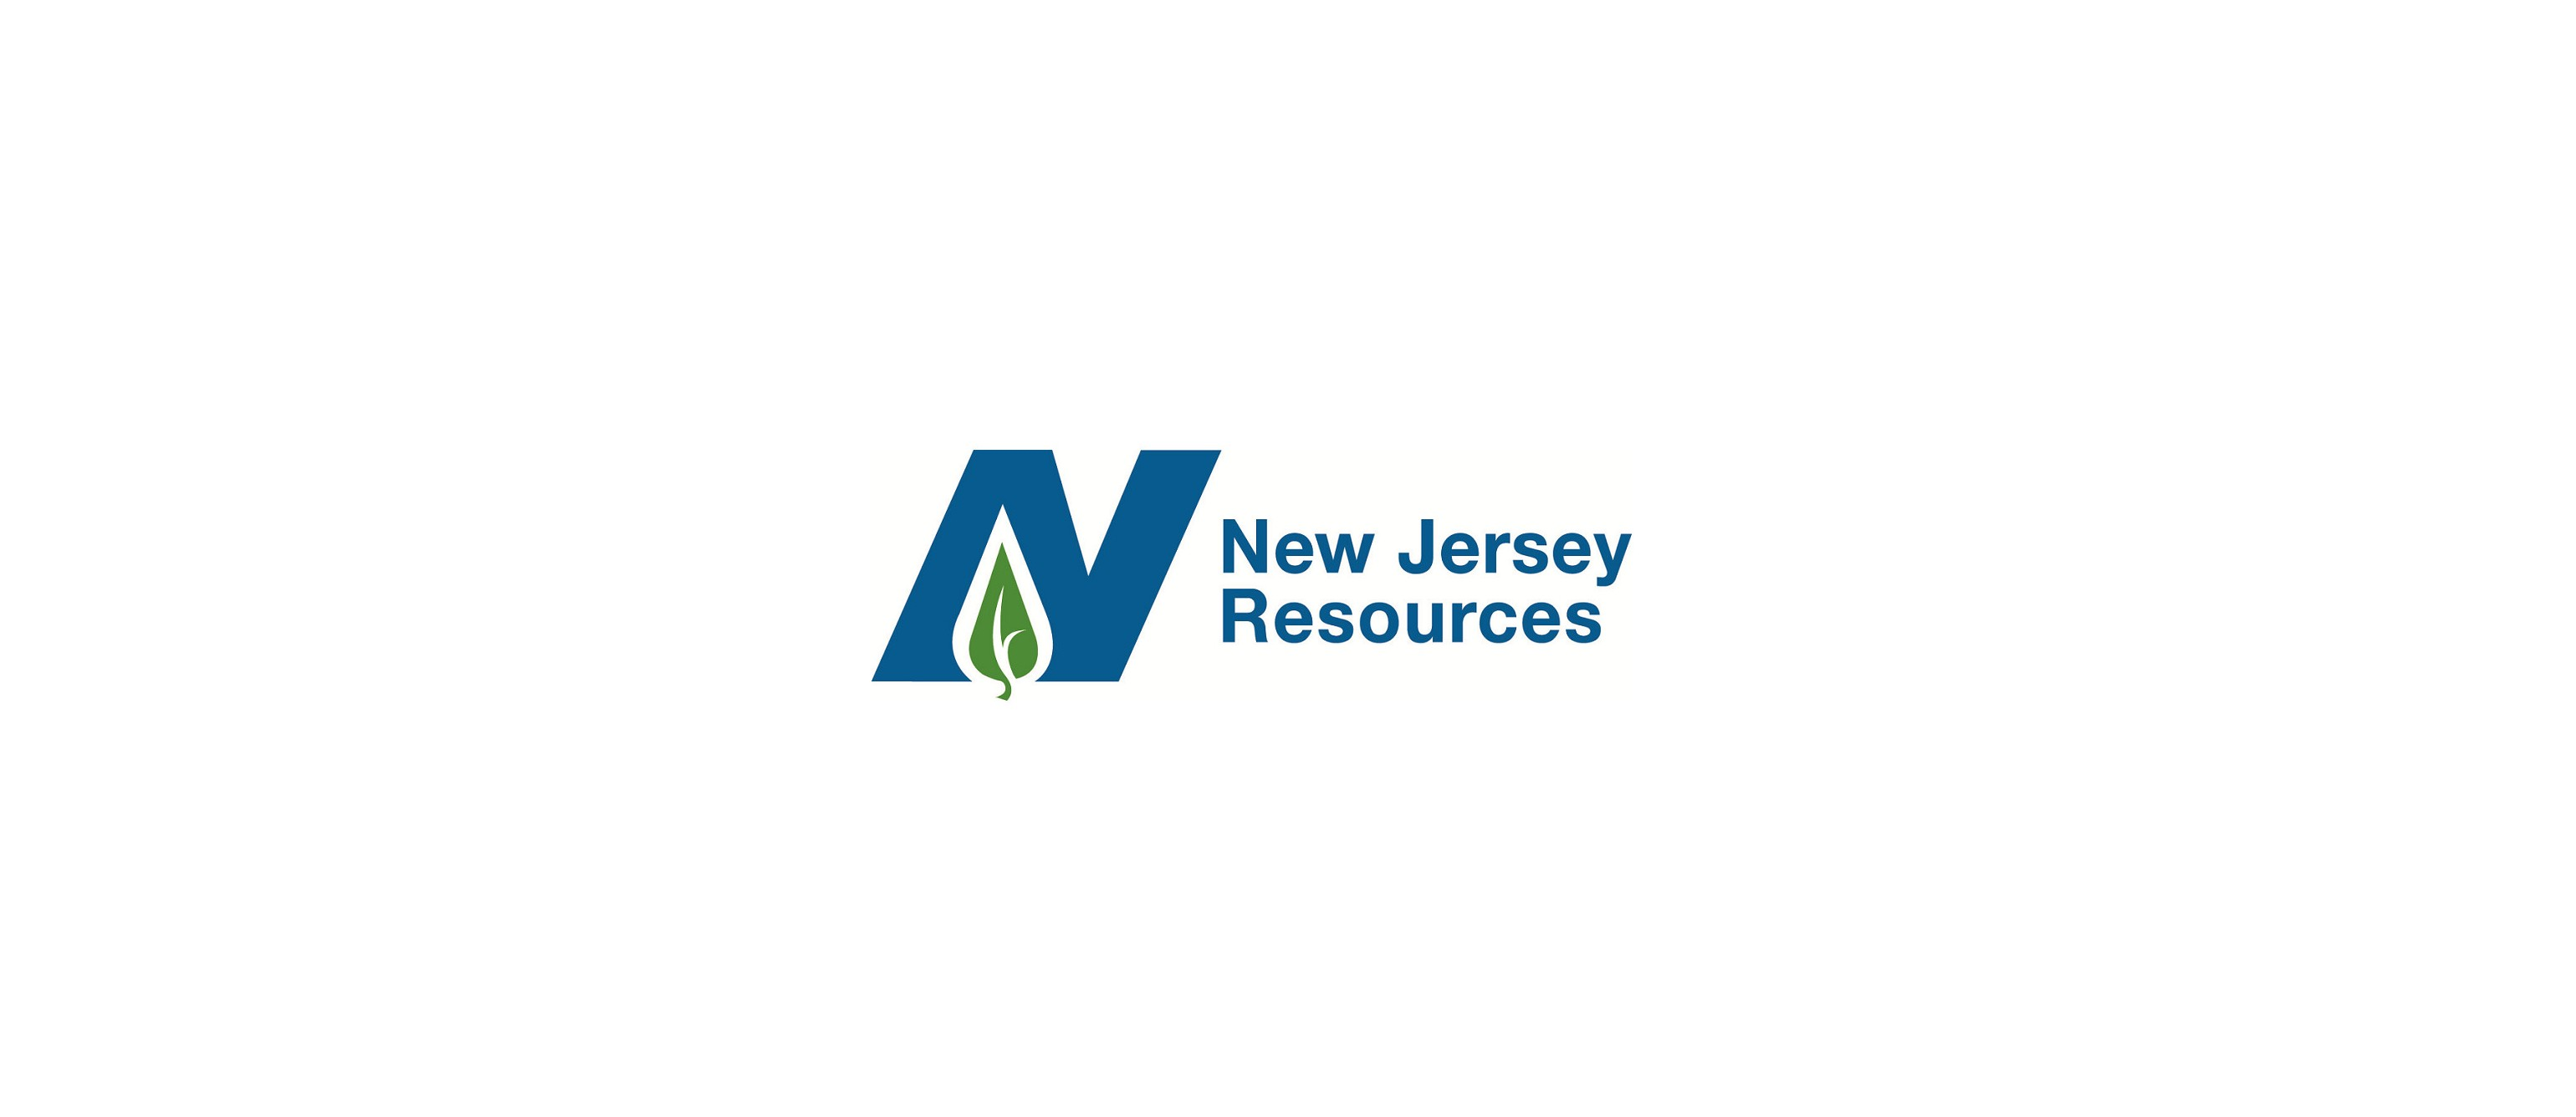 New Jersey Resources logo